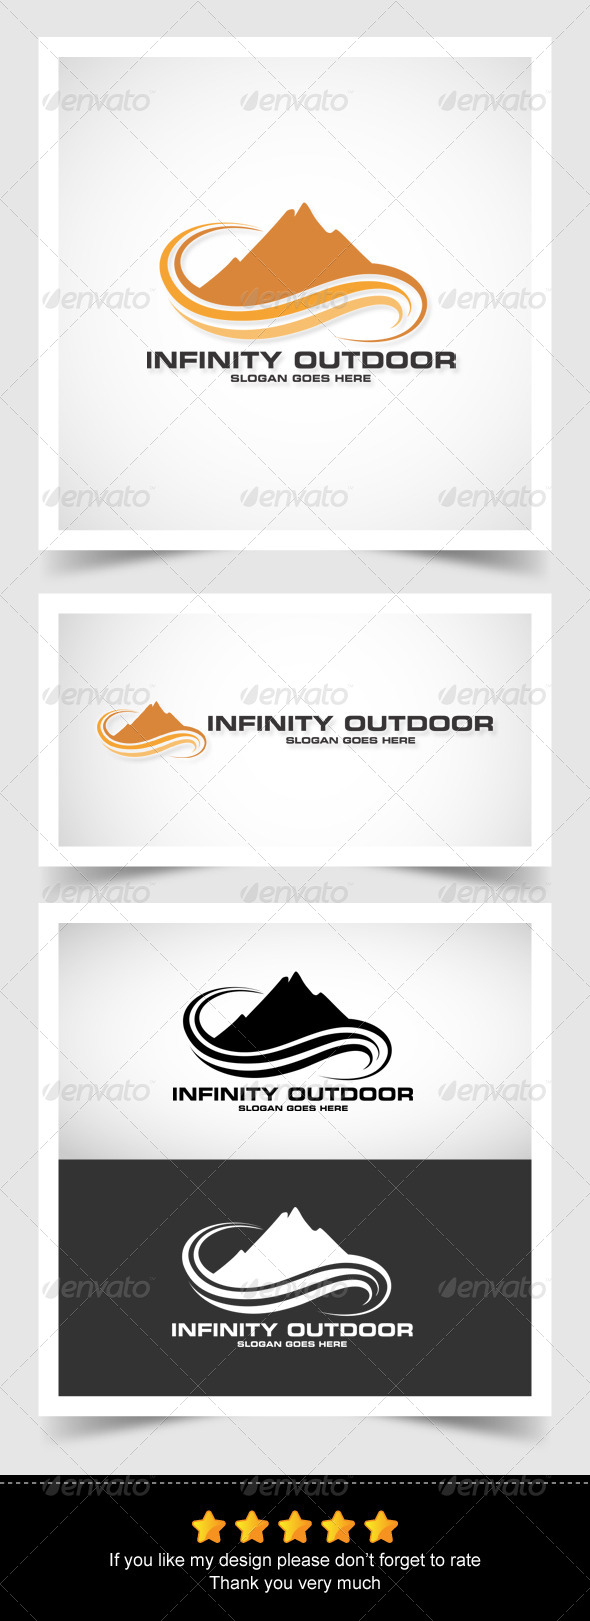 GraphicRiver Infinity Outdoor 6798526